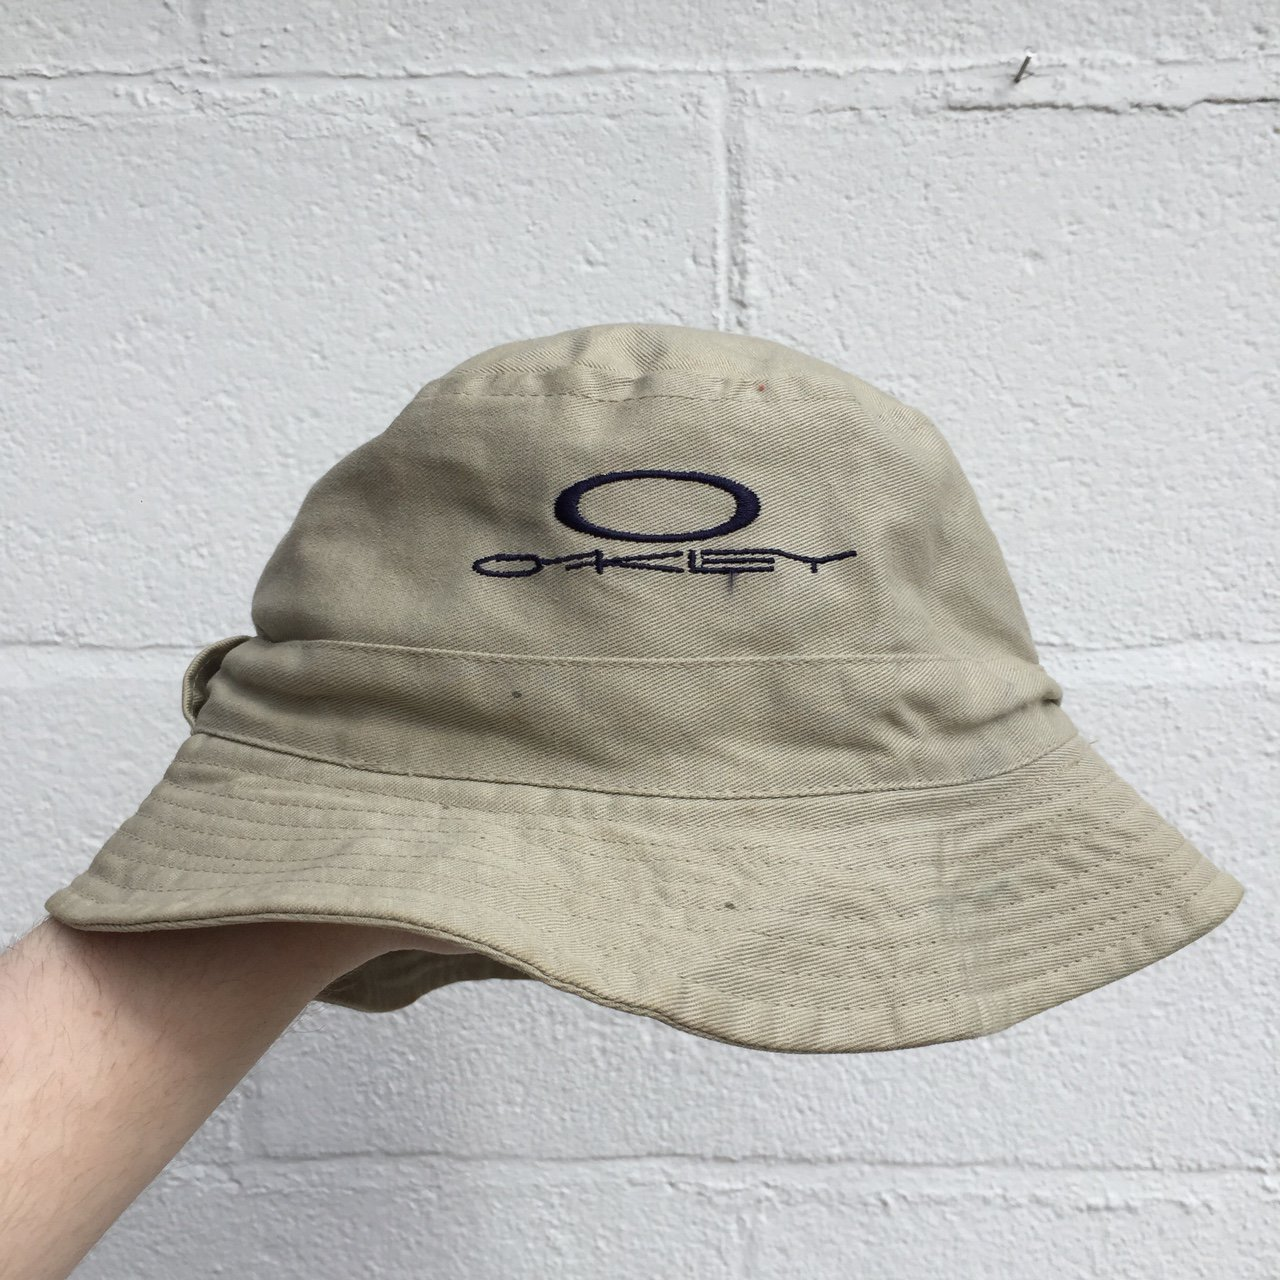 99d539dec18 2 years ago. staffordshire united kingdom. oakley bucket hat d3521 5c2c9